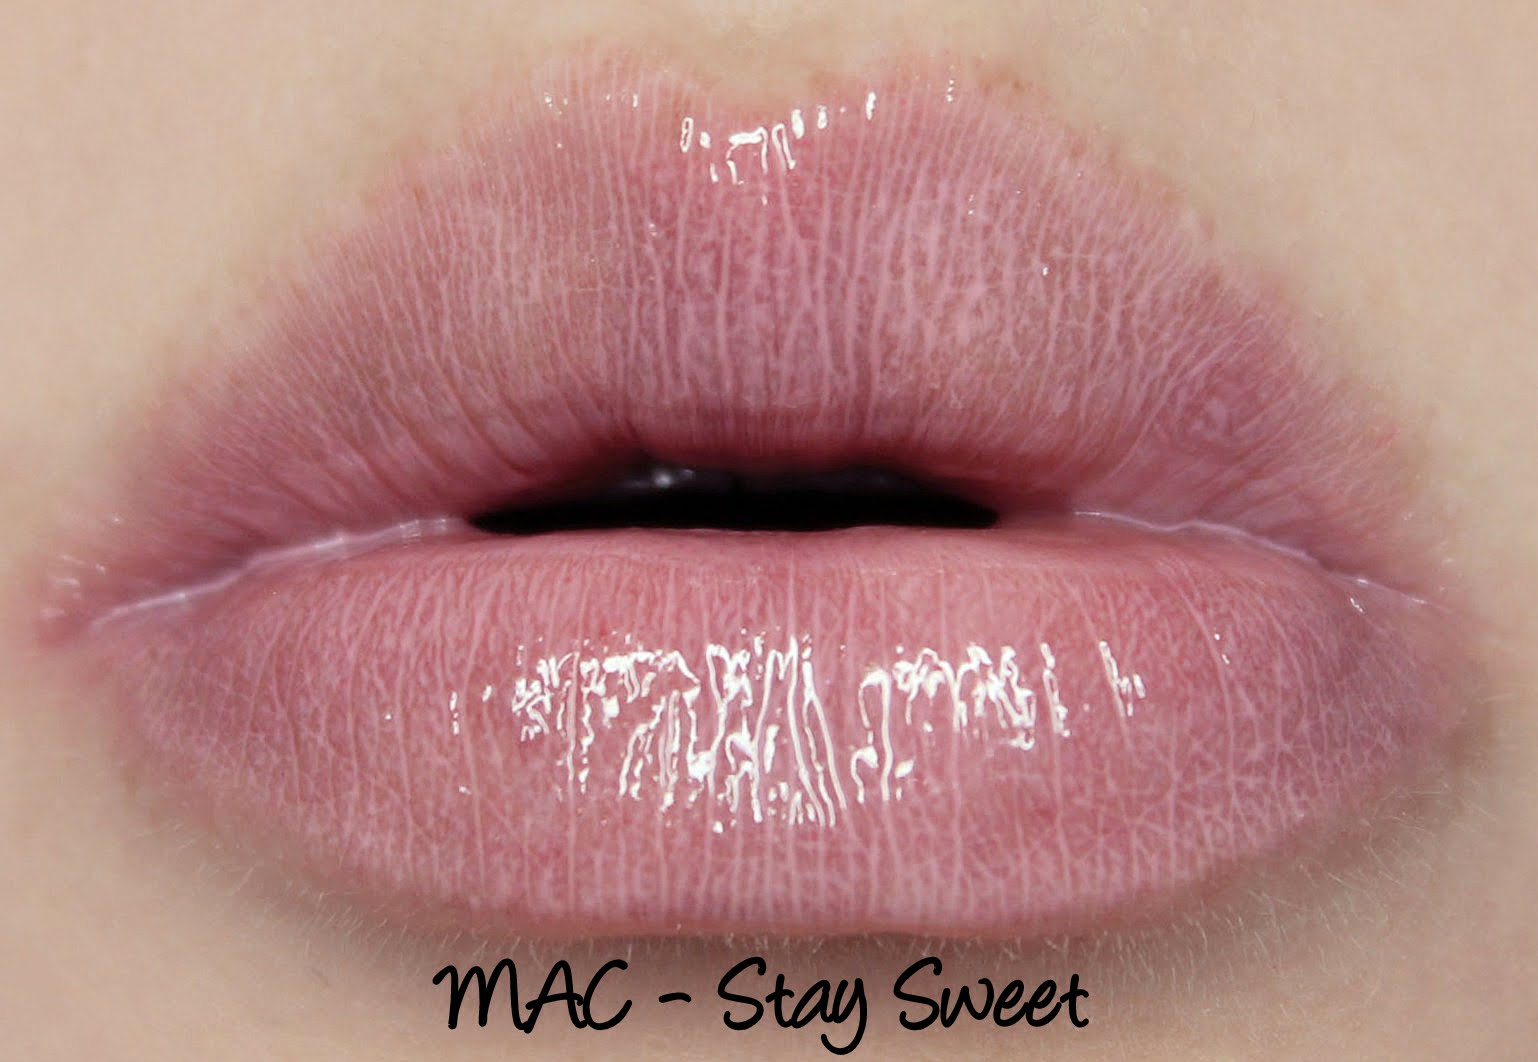 MAC Monday: Archie's Girls - Stay Sweet Lipglass Swatches & Review